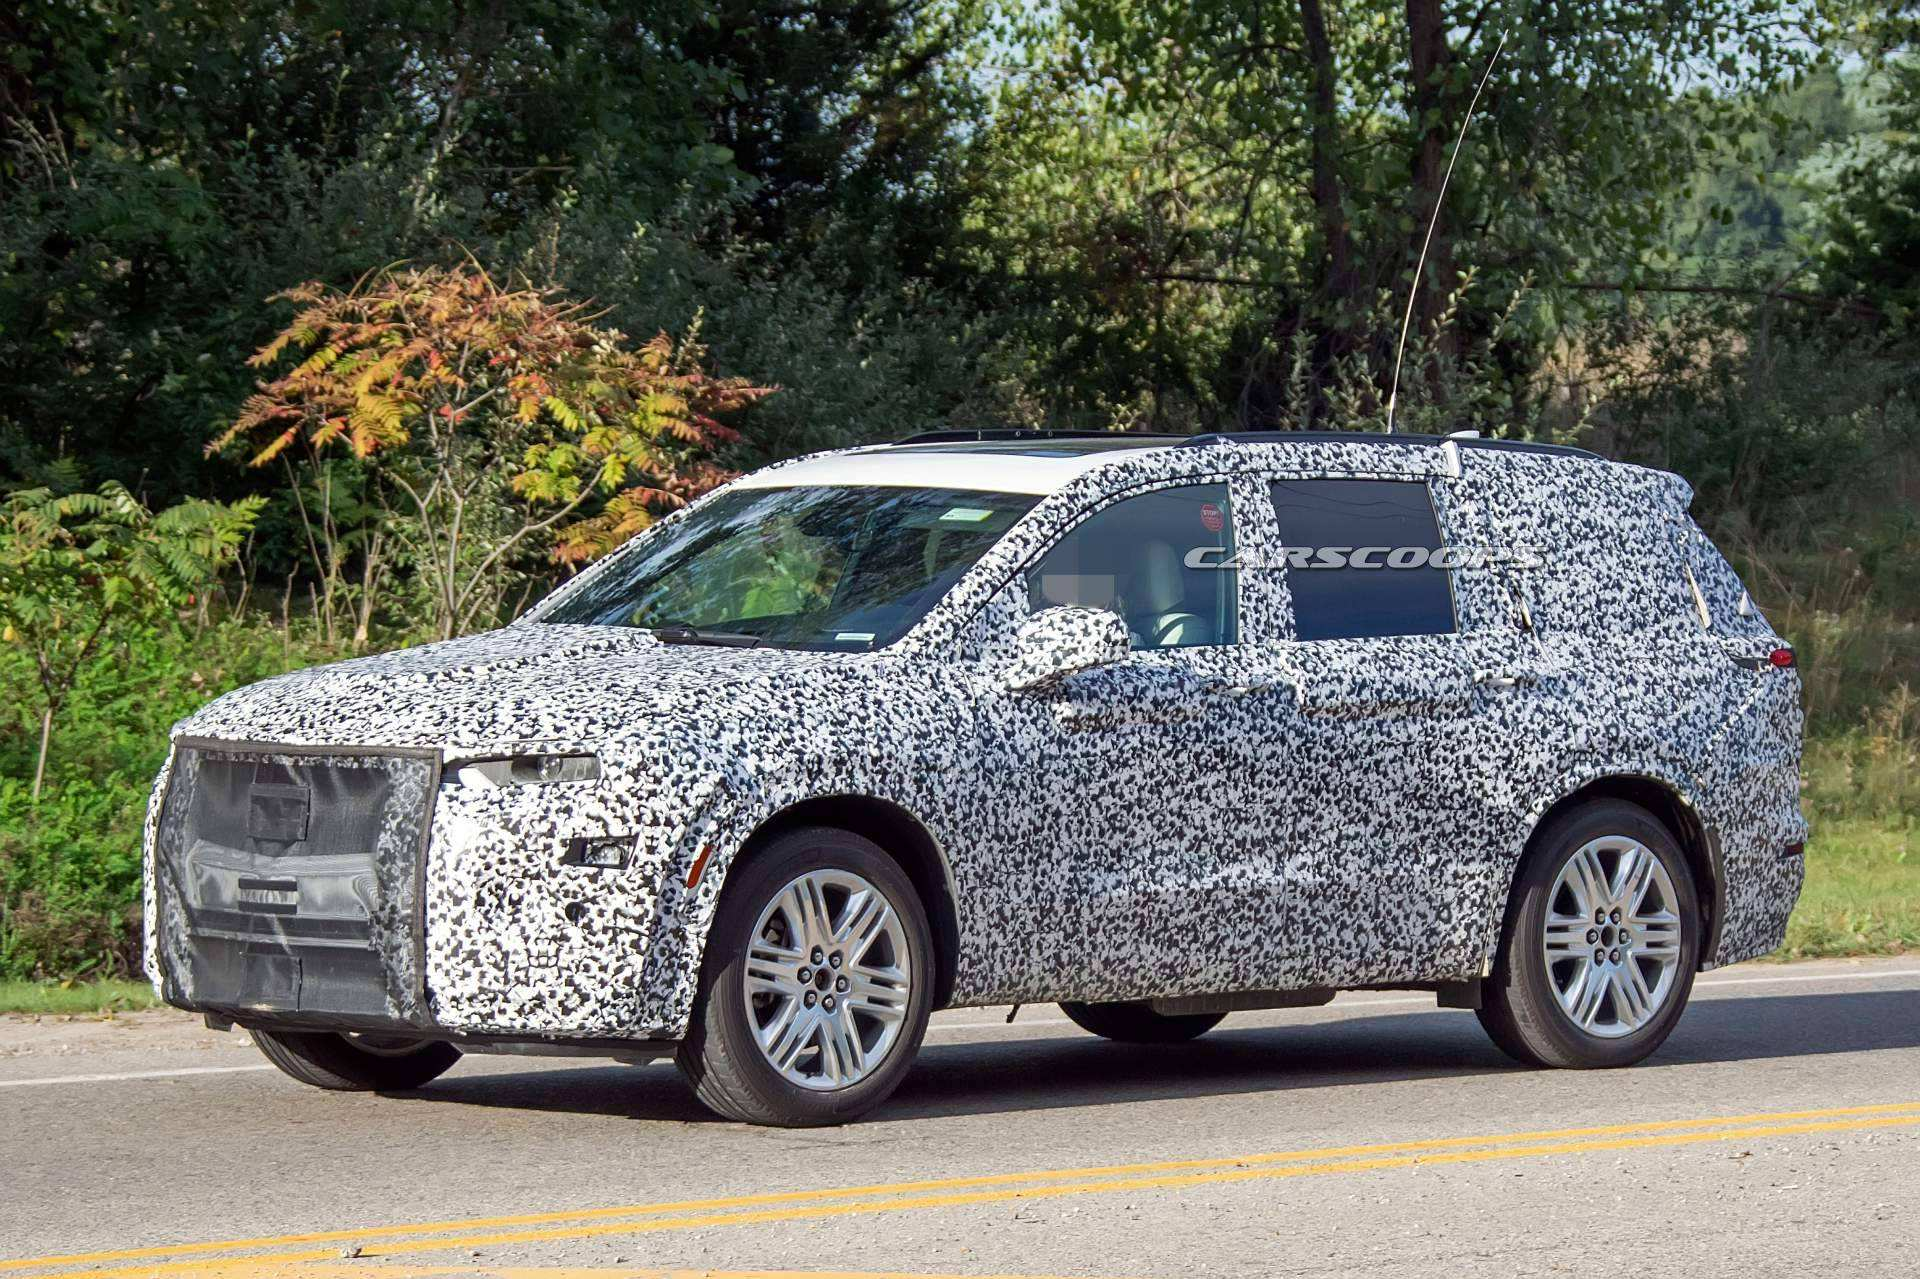 71 New 2020 Cadillac Escalade Spy Photos Rumors